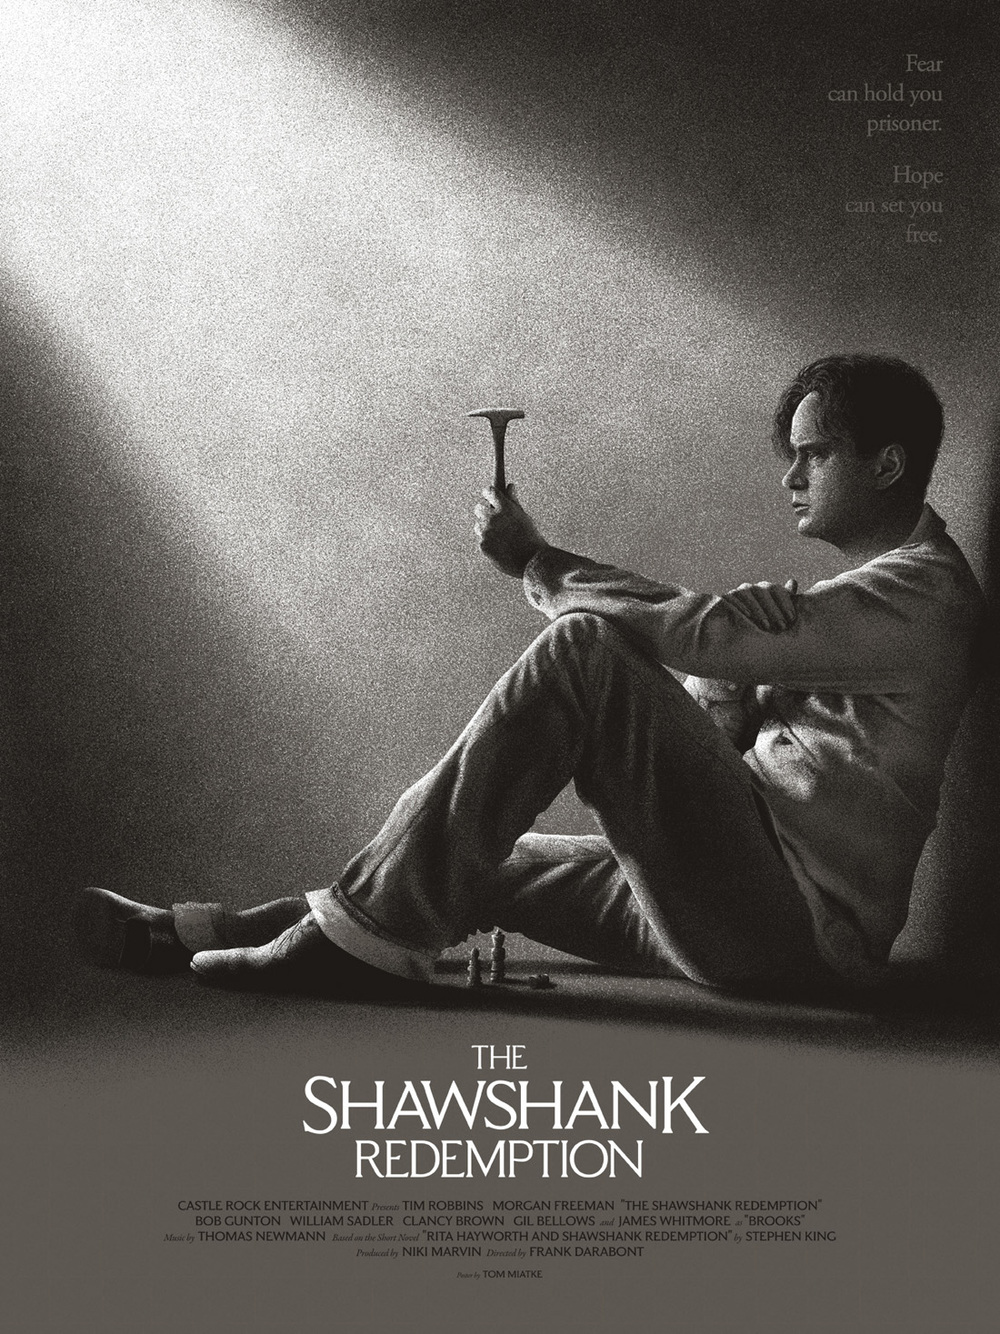 Shawshank Redemption AP Edition of 10 2 Colour Screenprint $35USD